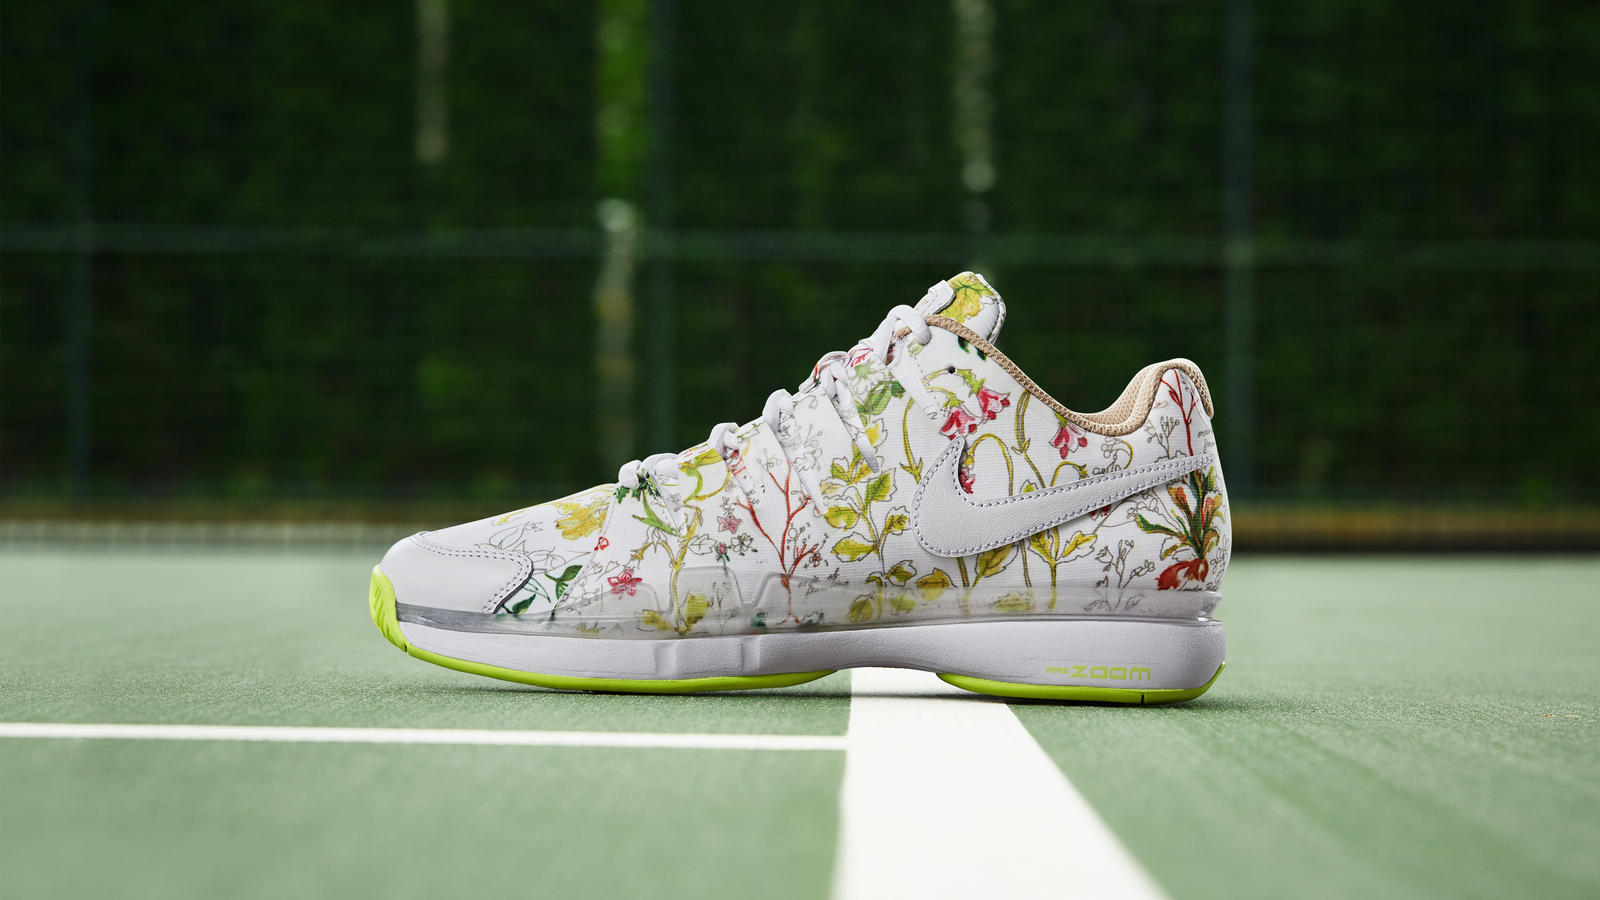 Nike news sneaker feed liberty tennis p hd 1600